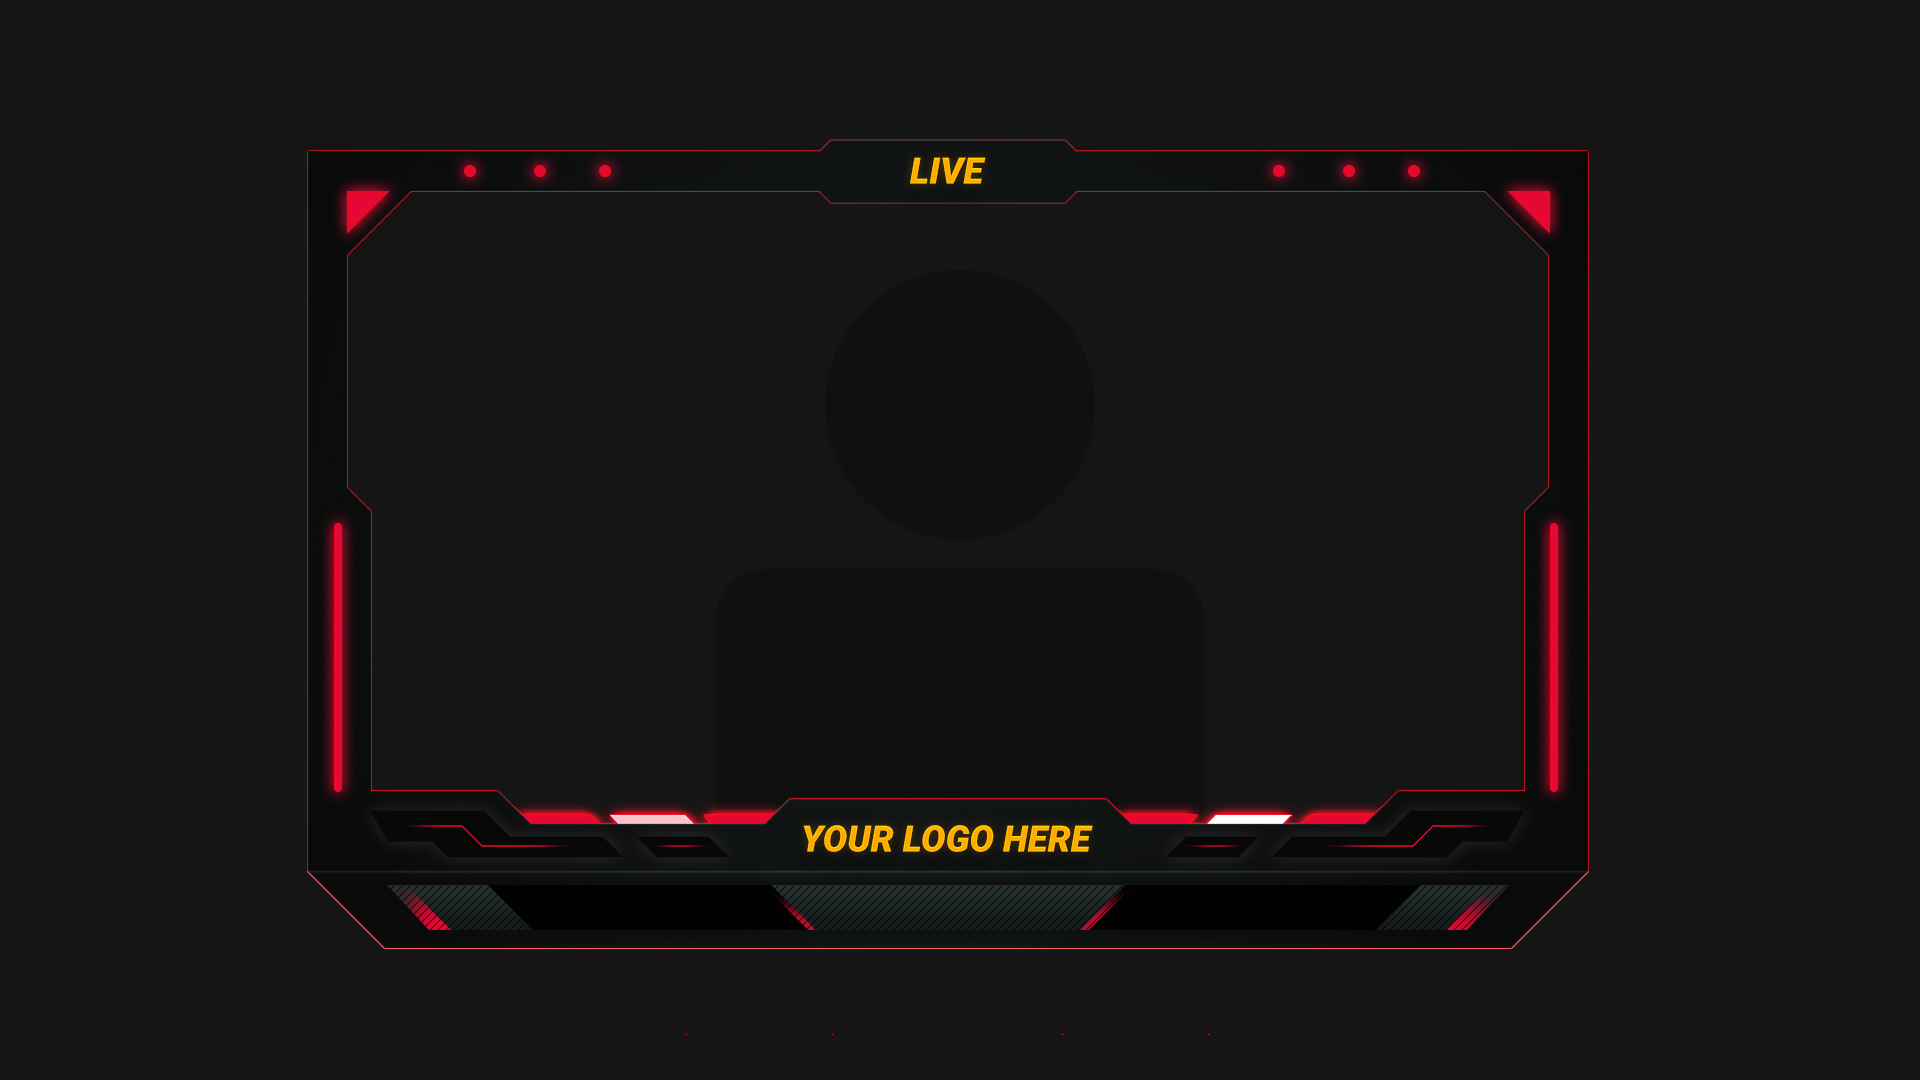 Red Simple webcam overlay - Streamer Overlays